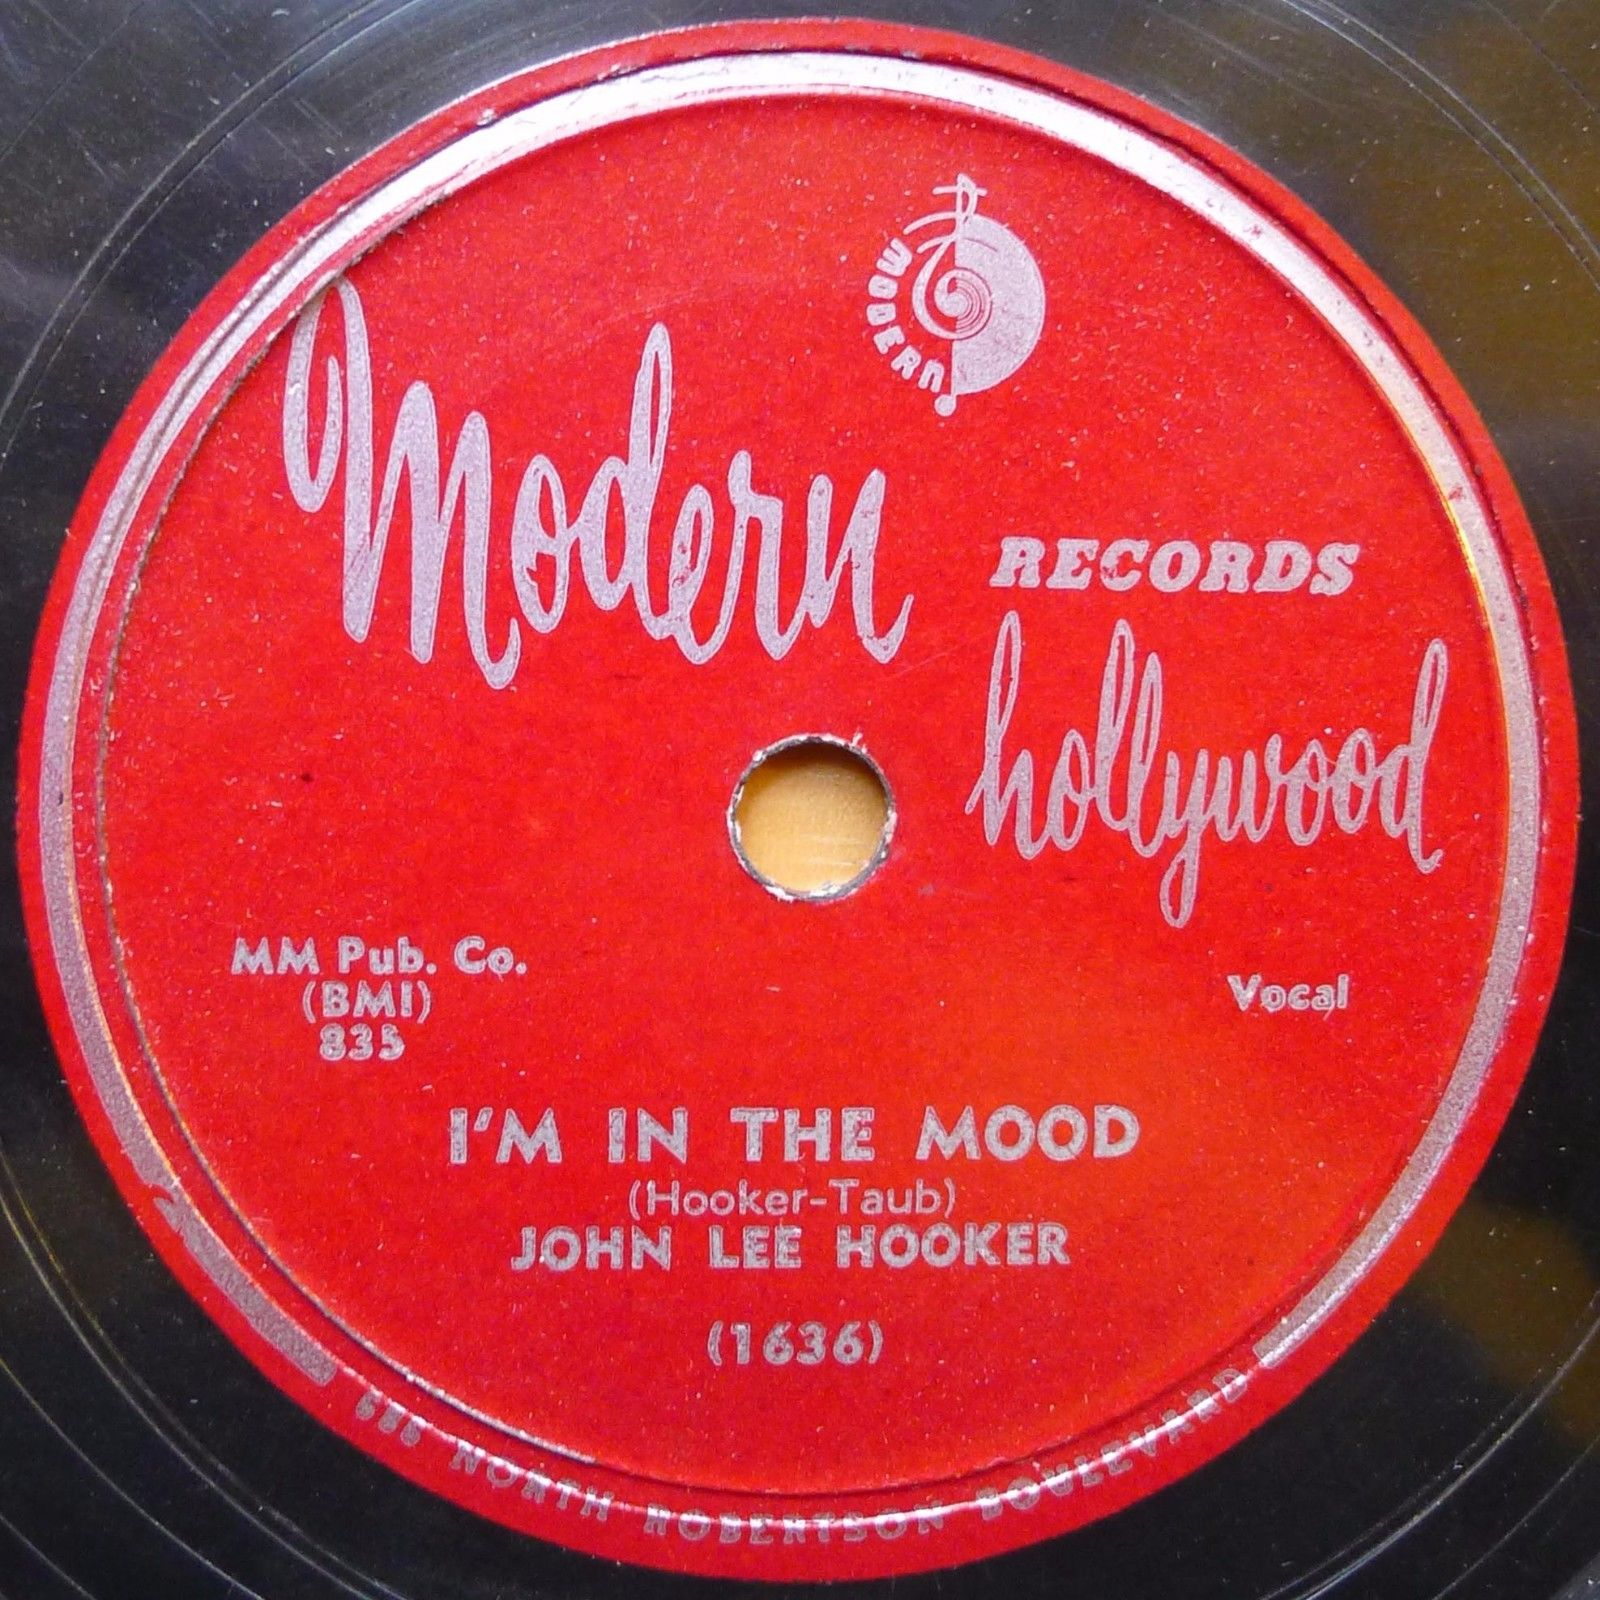 JOHN LEE HOOKER 78 MODERN 1635 I'M IN THE MOOD